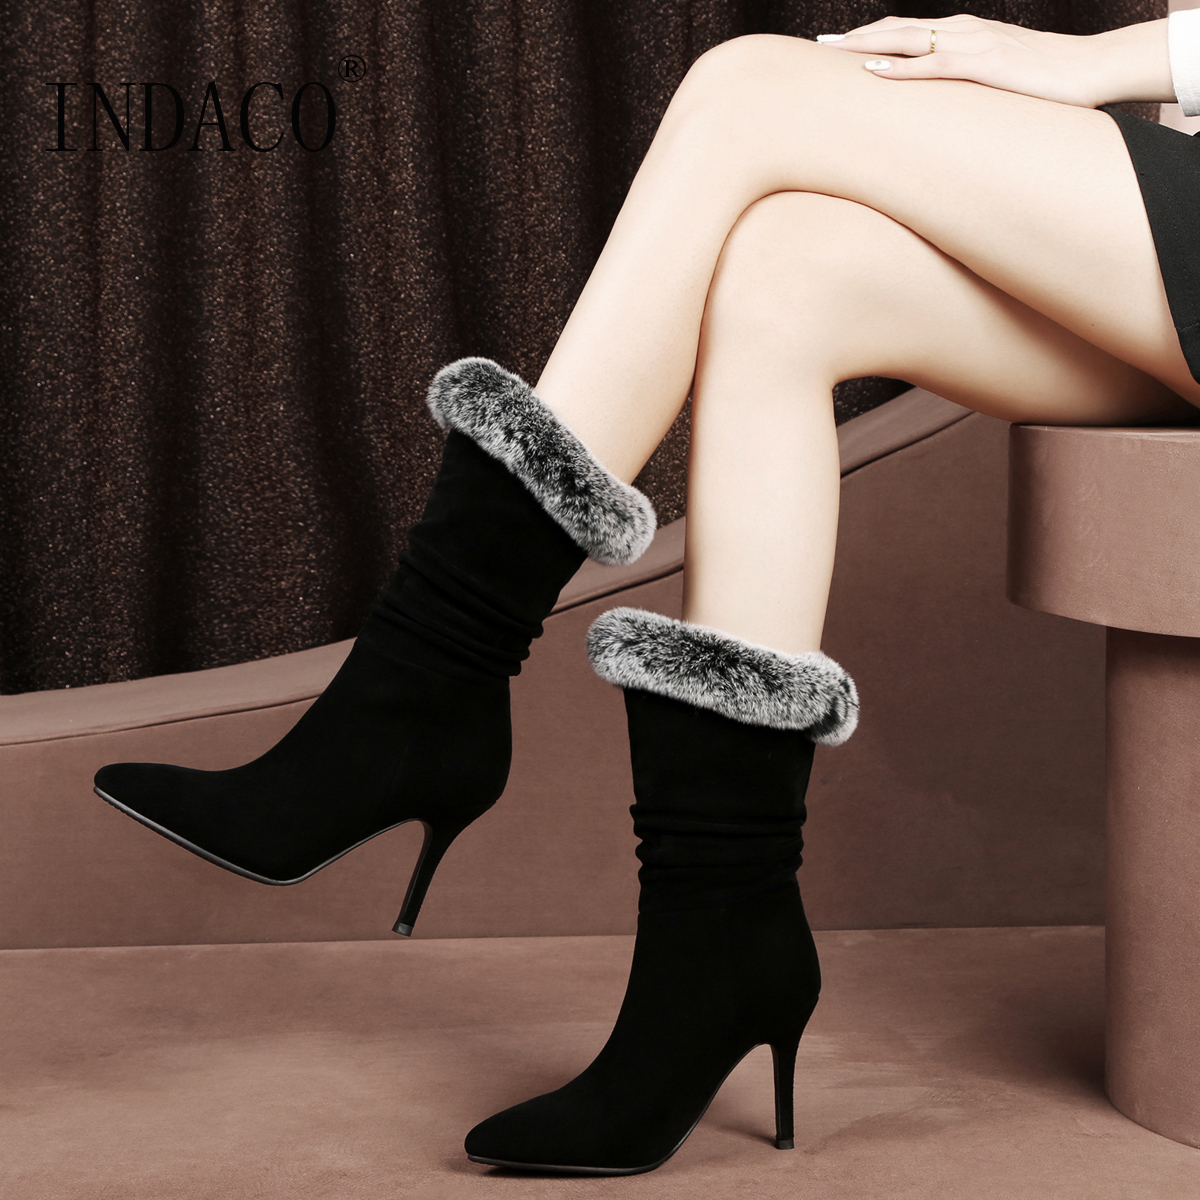 2018 NEW Fur Leather Boots Women High Heel Winter Boots Women Fashion Thigh High Boots Big Size 34-43 9.5cm/7cm